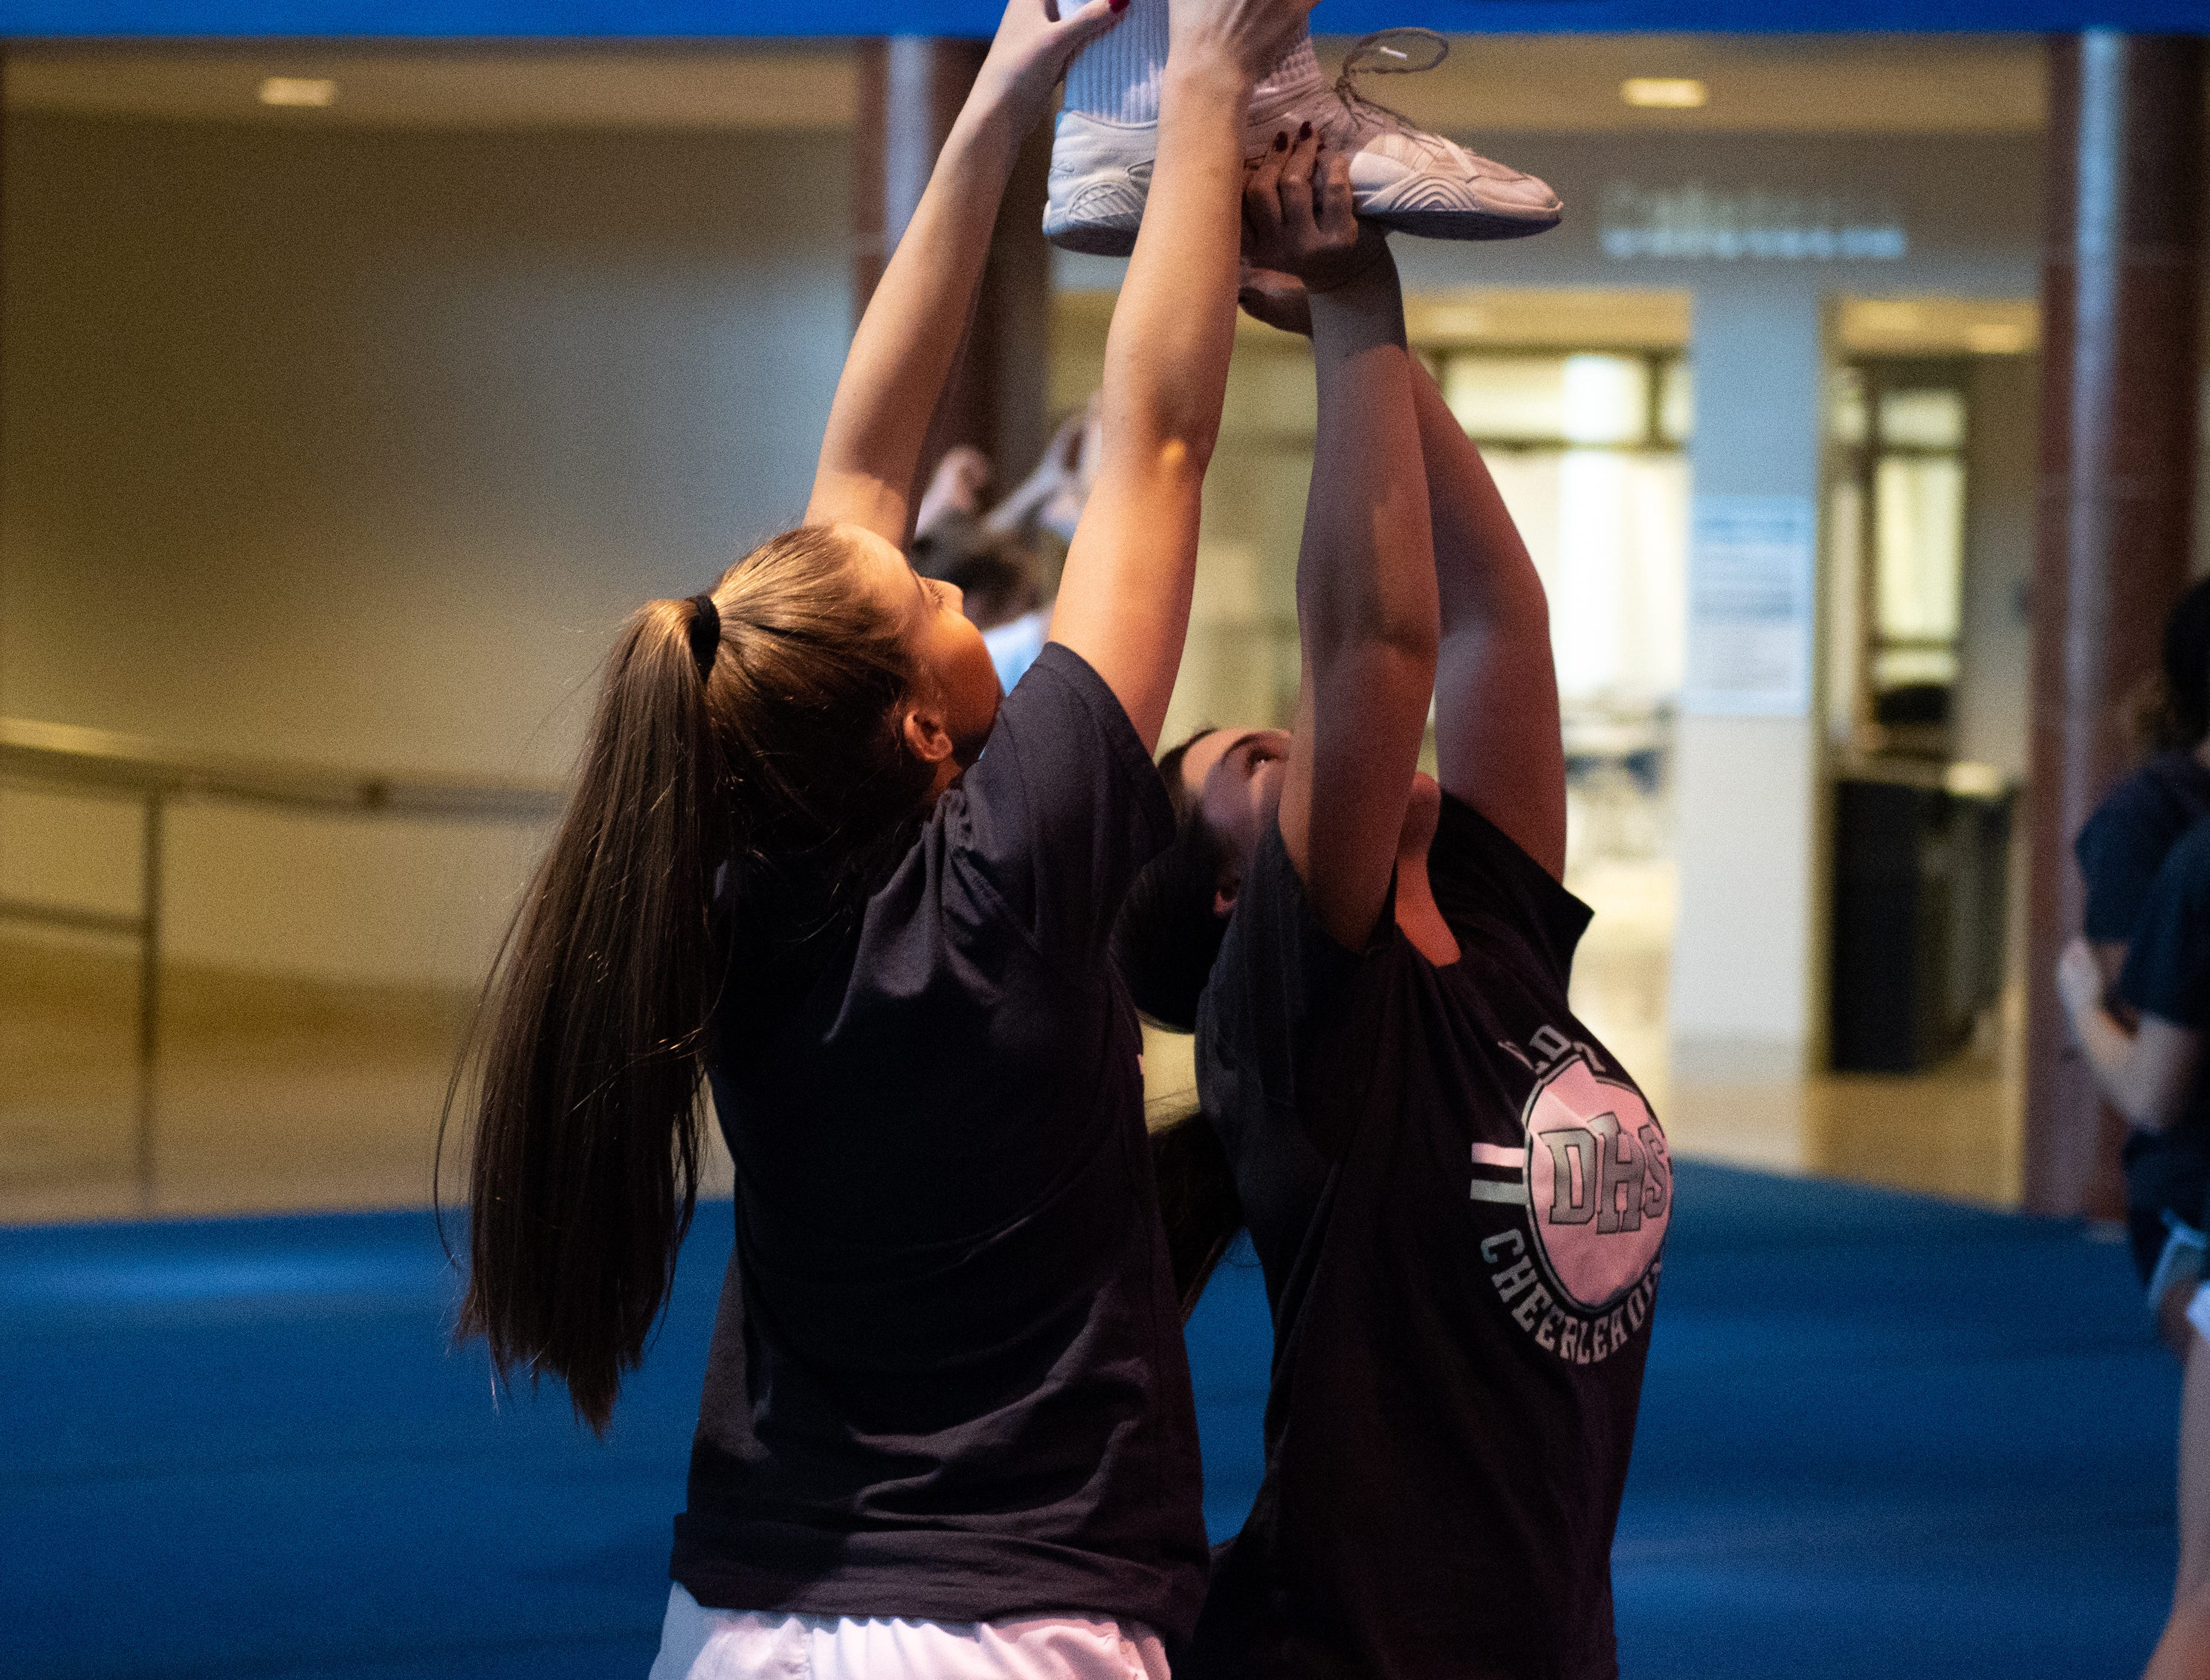 The squad members on the bottom hold up their teammate during Dallastown's competitive spirit practice, November 14, 2018.